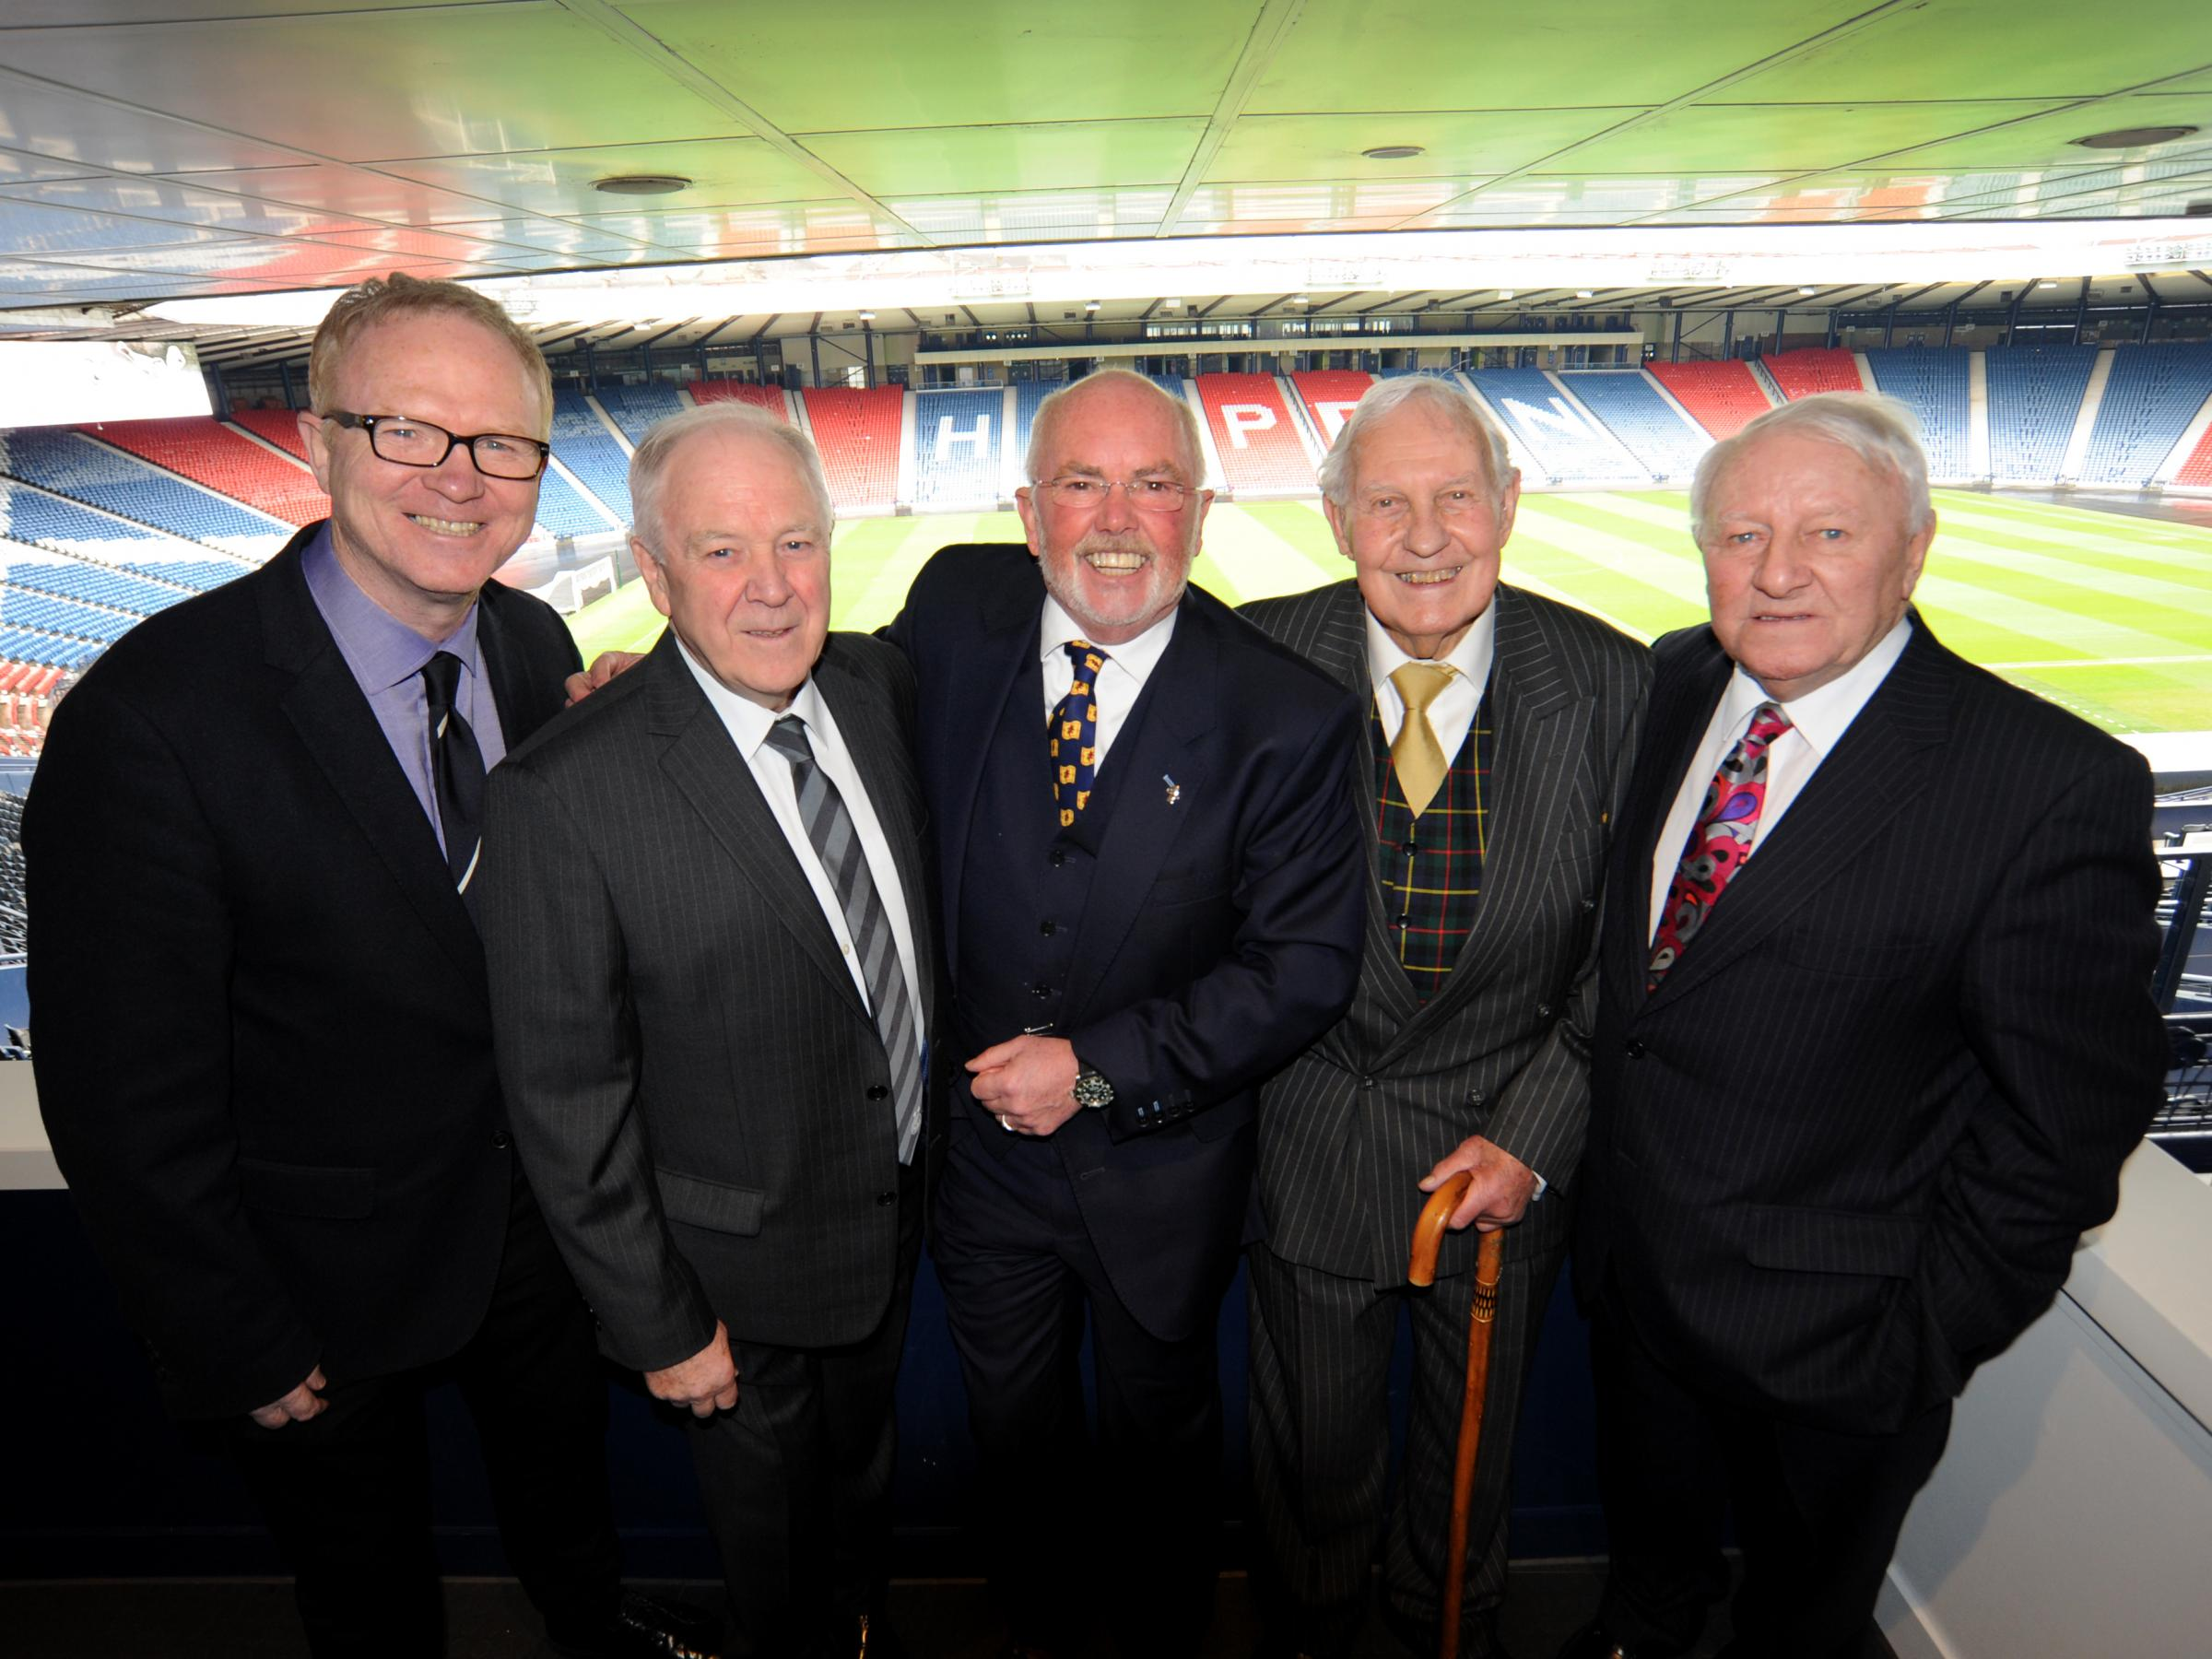 Alex McLeish, Craig Brown, pundit Chick Young, Bobbby Brown and Tommy Docherty at the Hampden lunch in Bobby's honour (Pic - Variety Scotland)